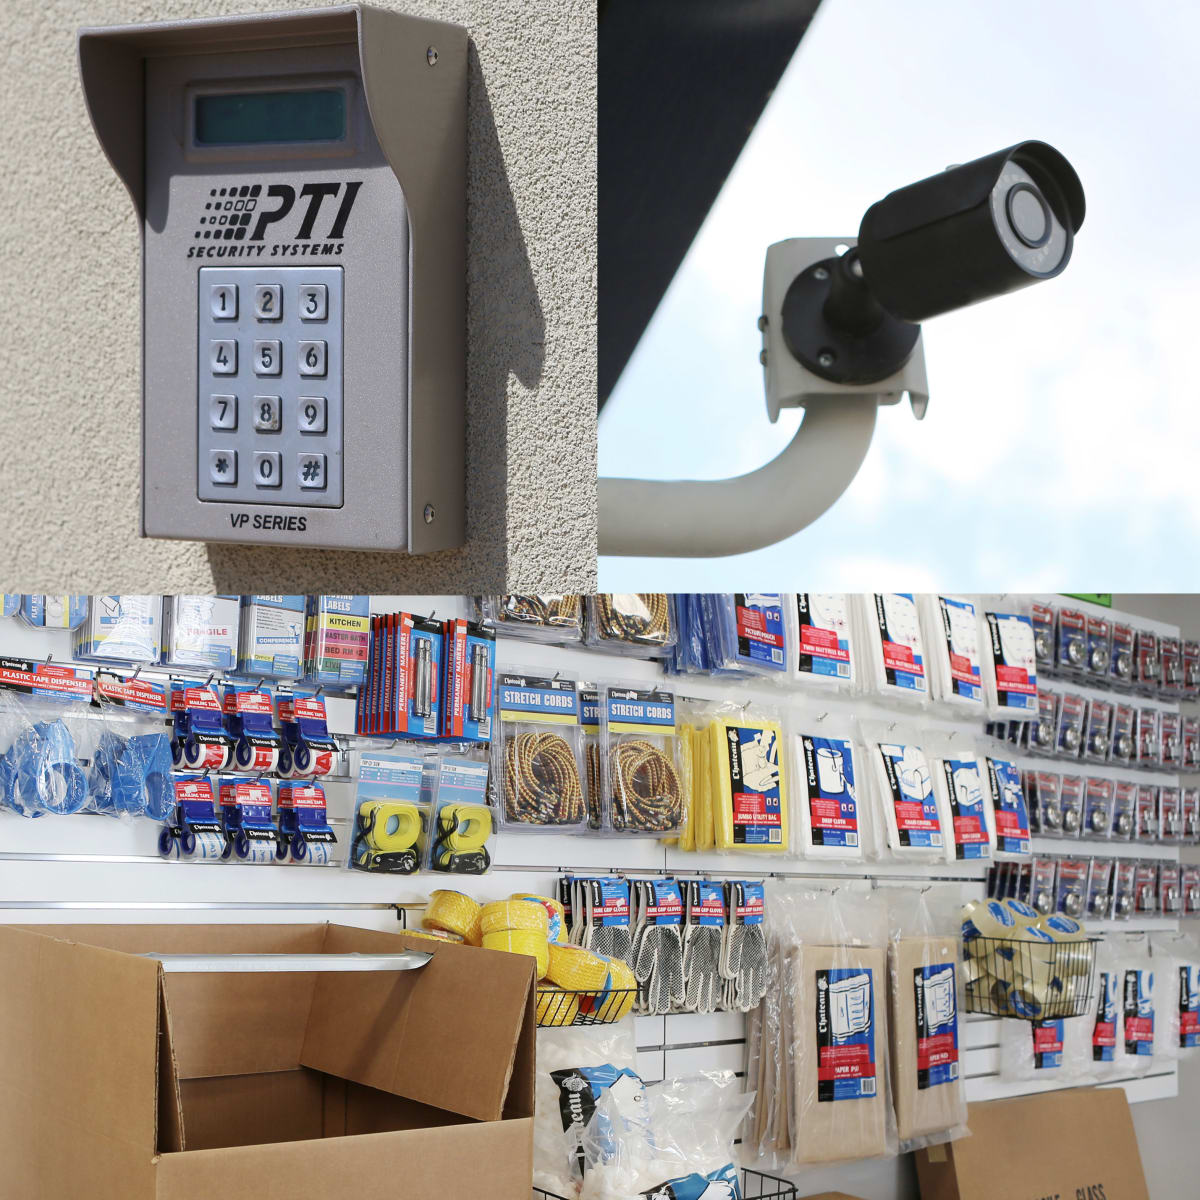 We provide 24 hour security monitoring and sell various moving and packing supplies at Midgard Self Storage in Pawleys Island, South Carolina